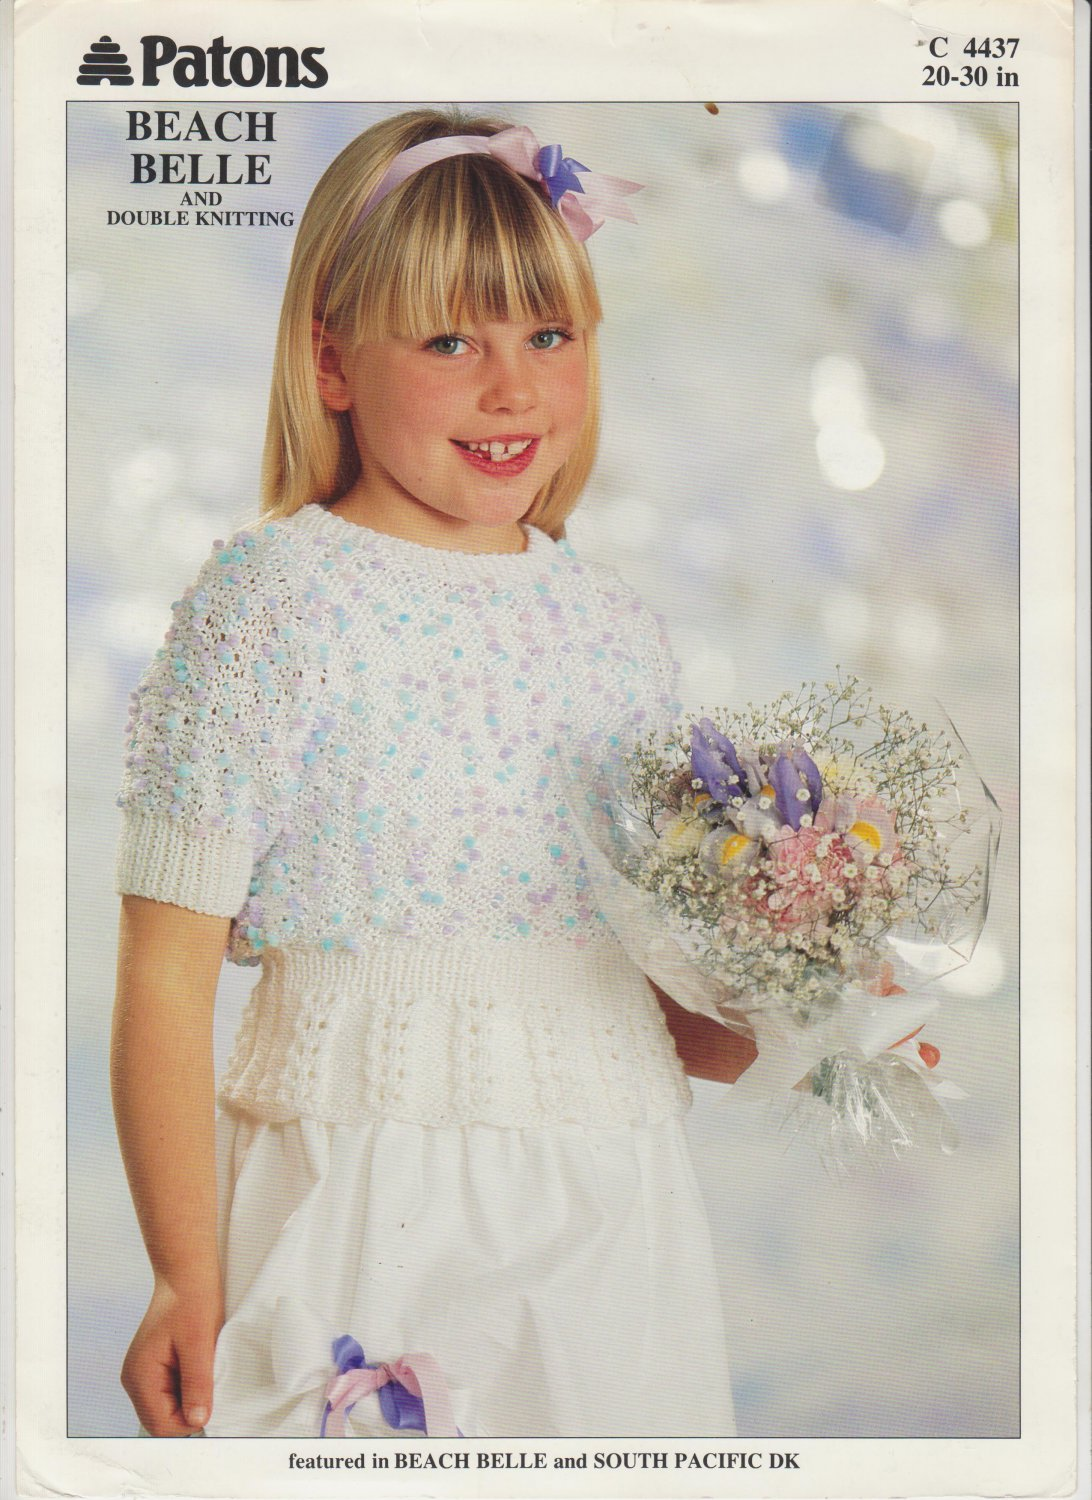 Patons Beach Belle 1991 Knitting Pattern #C4437 Peplum Sweater